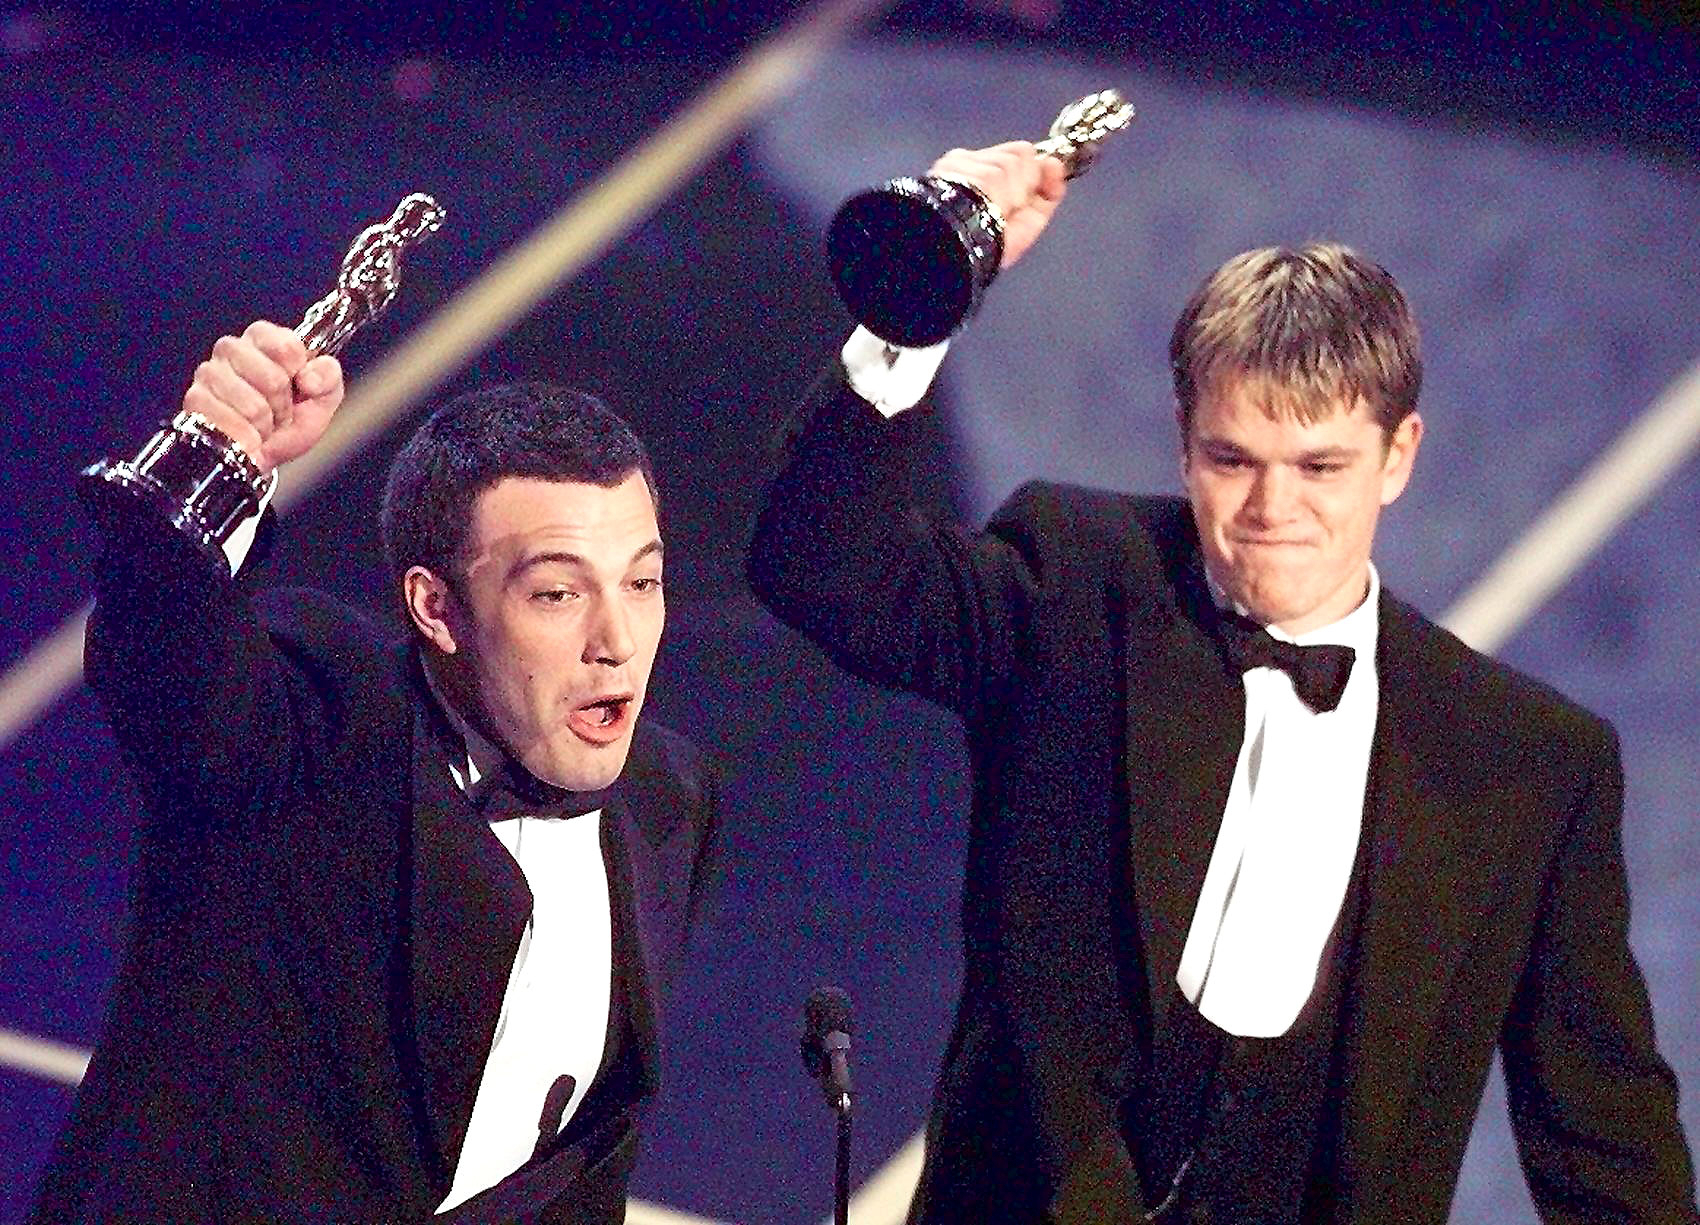 "Ben Affleck (L) and Matt Damon hold up their Oscars after winning in the Original Screenplay Category during the 70th Academy Awards at the Shrine Auditorium 23 March. The two won for their Original Screenplay ""Good Will Hunting."""